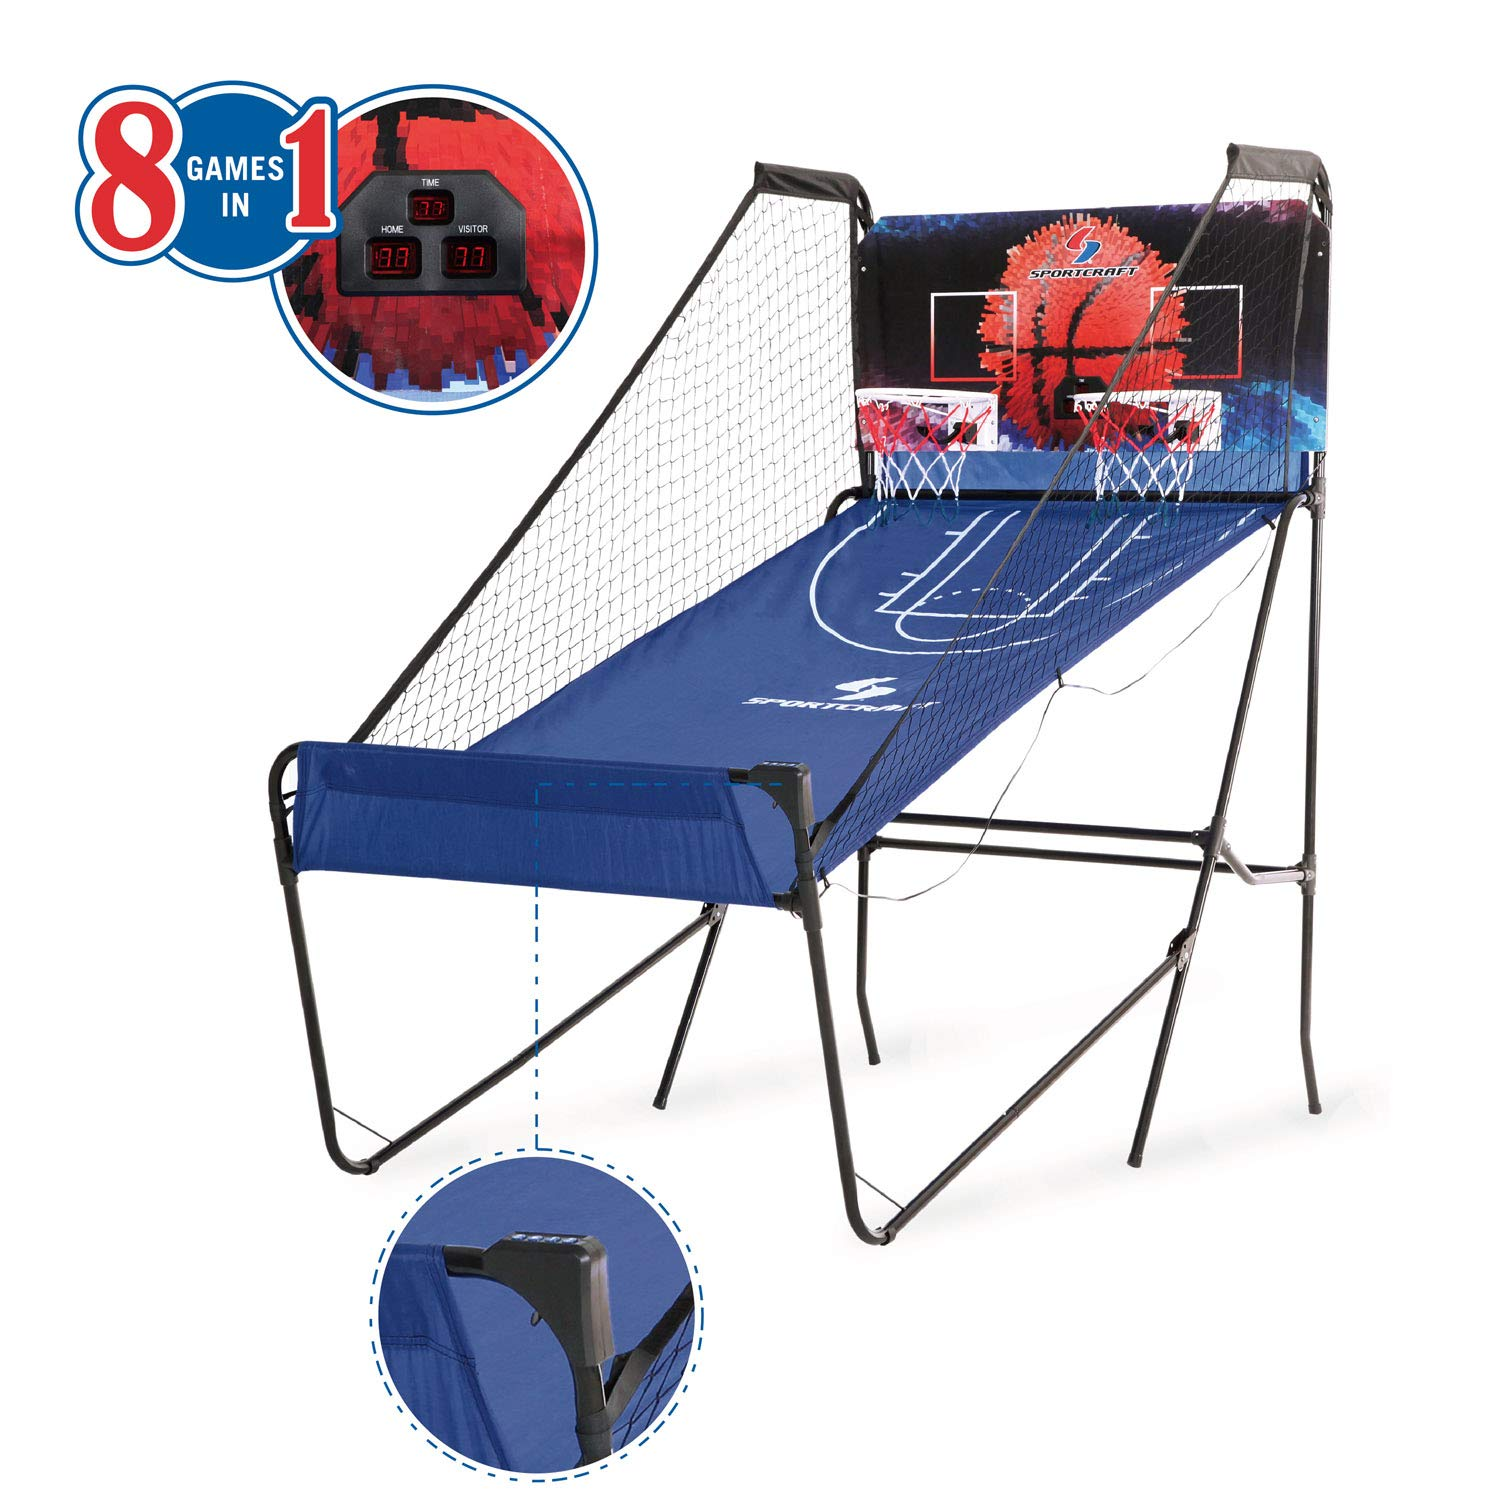 Sportcraft SIR00733 Quick Set-Up Basketball Arcade 8 Game Modes, 2-Players, Setup Less Than 10 Mins, No Tools Required, Heavy Duty 1'' Steel Tube by Sportcraft (Image #1)